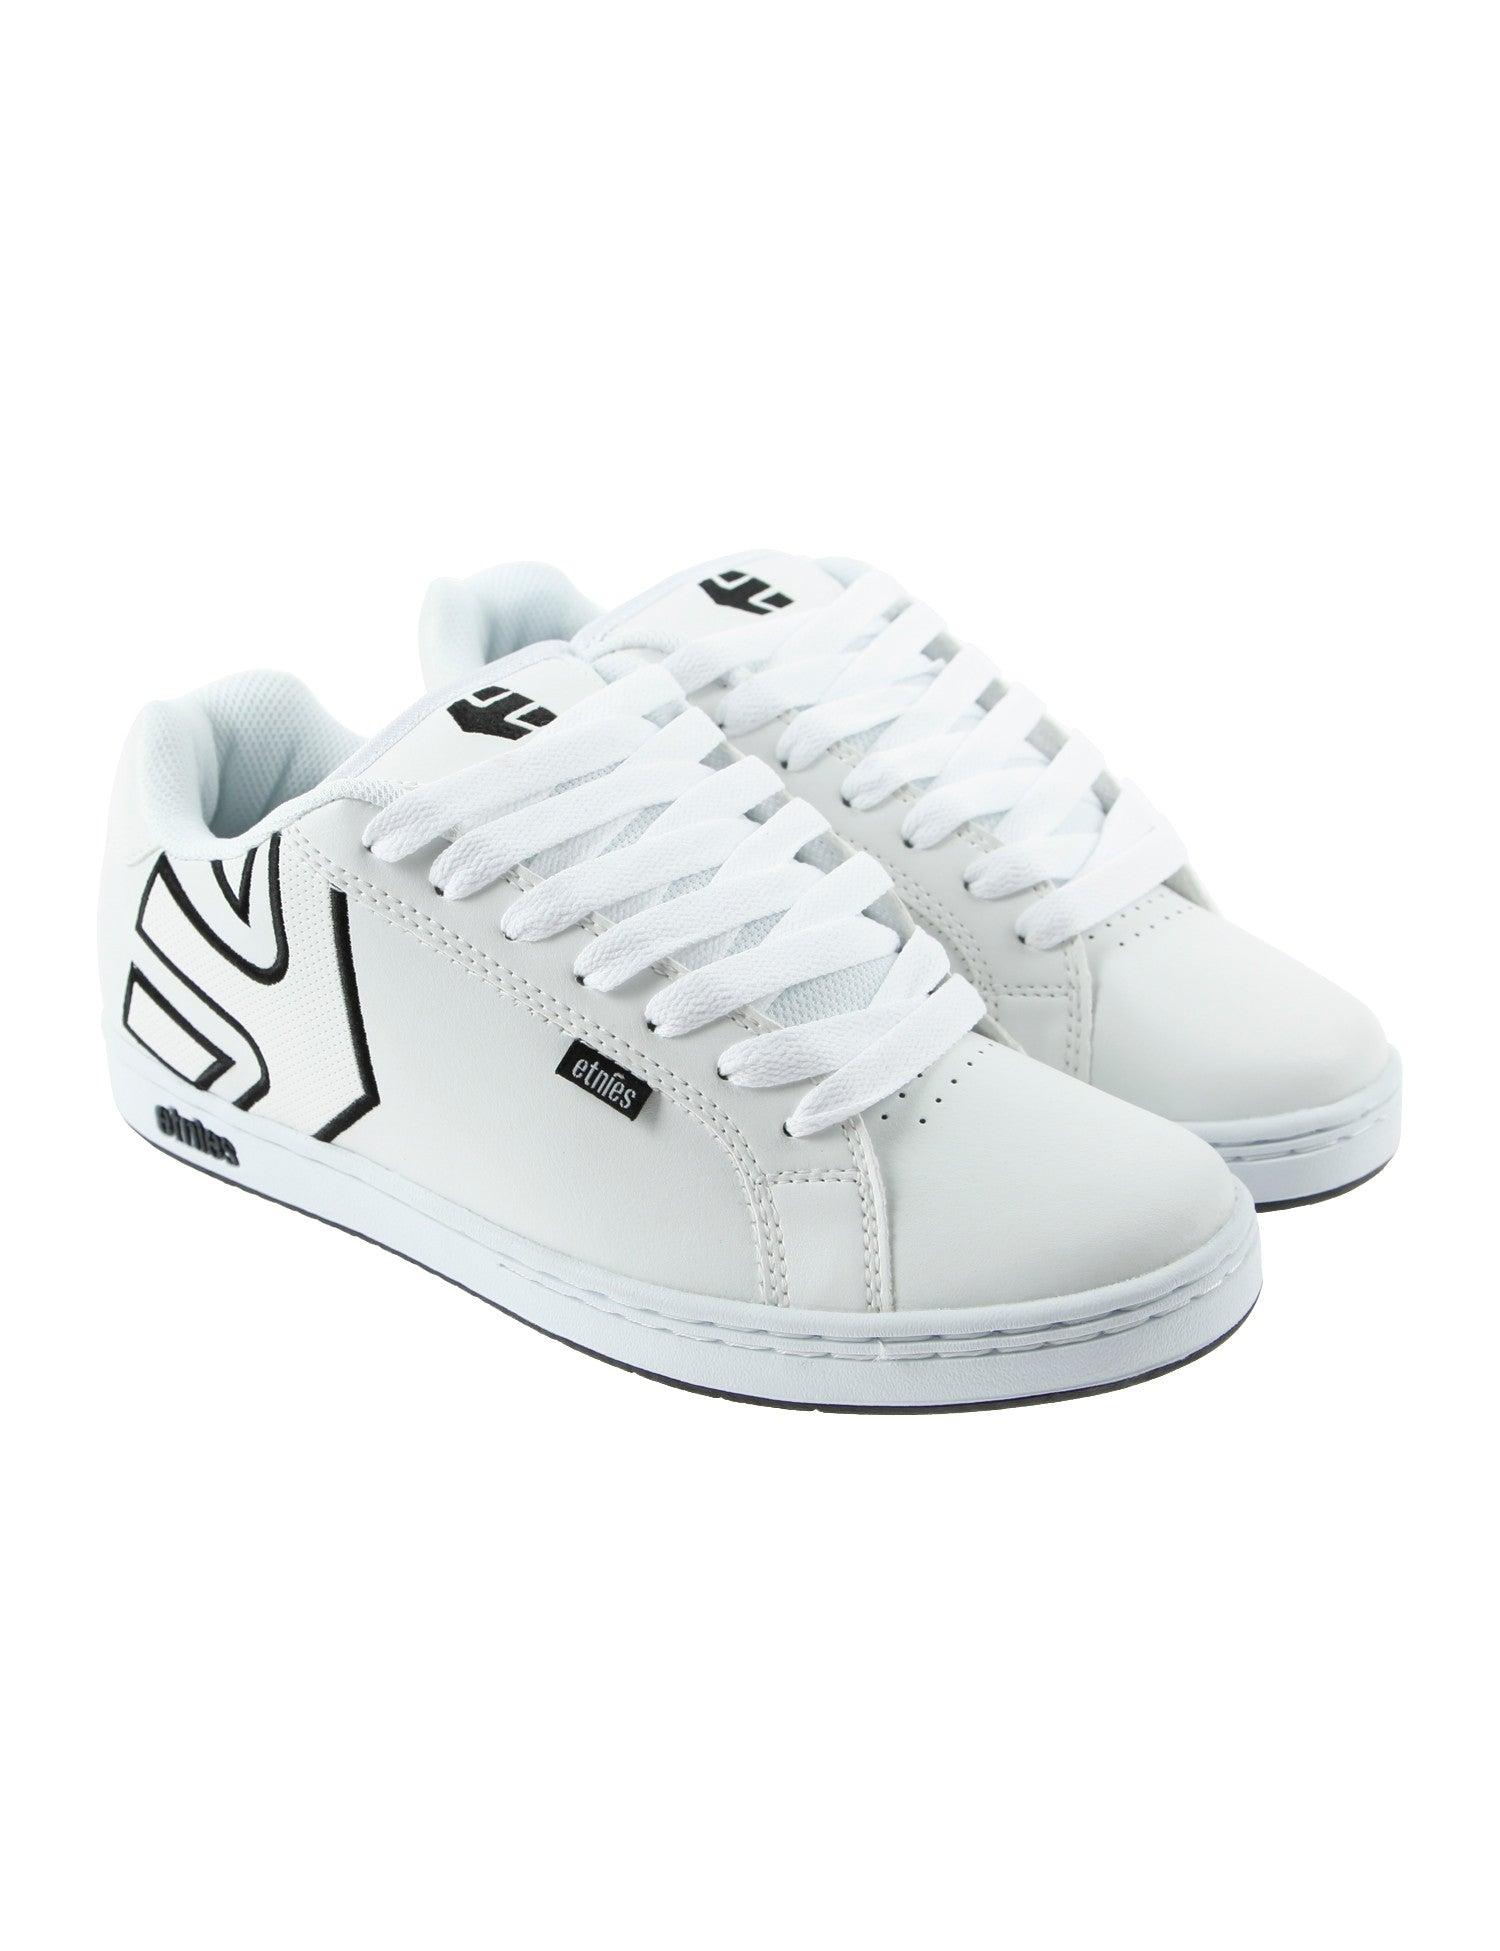 Etnies Fader Shoes White